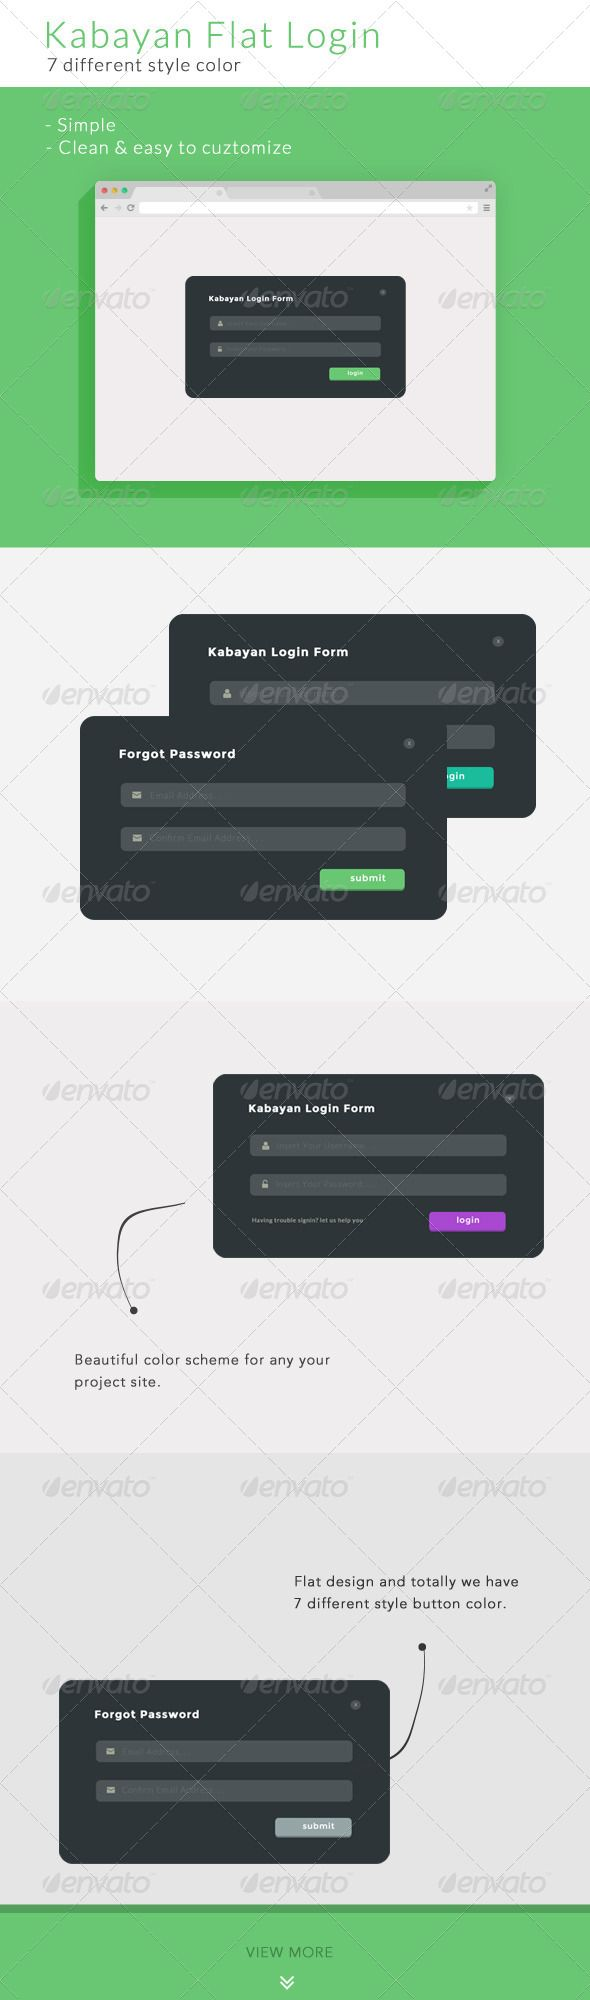 22 best PSD Form Template images on Pinterest   Psd templates ...